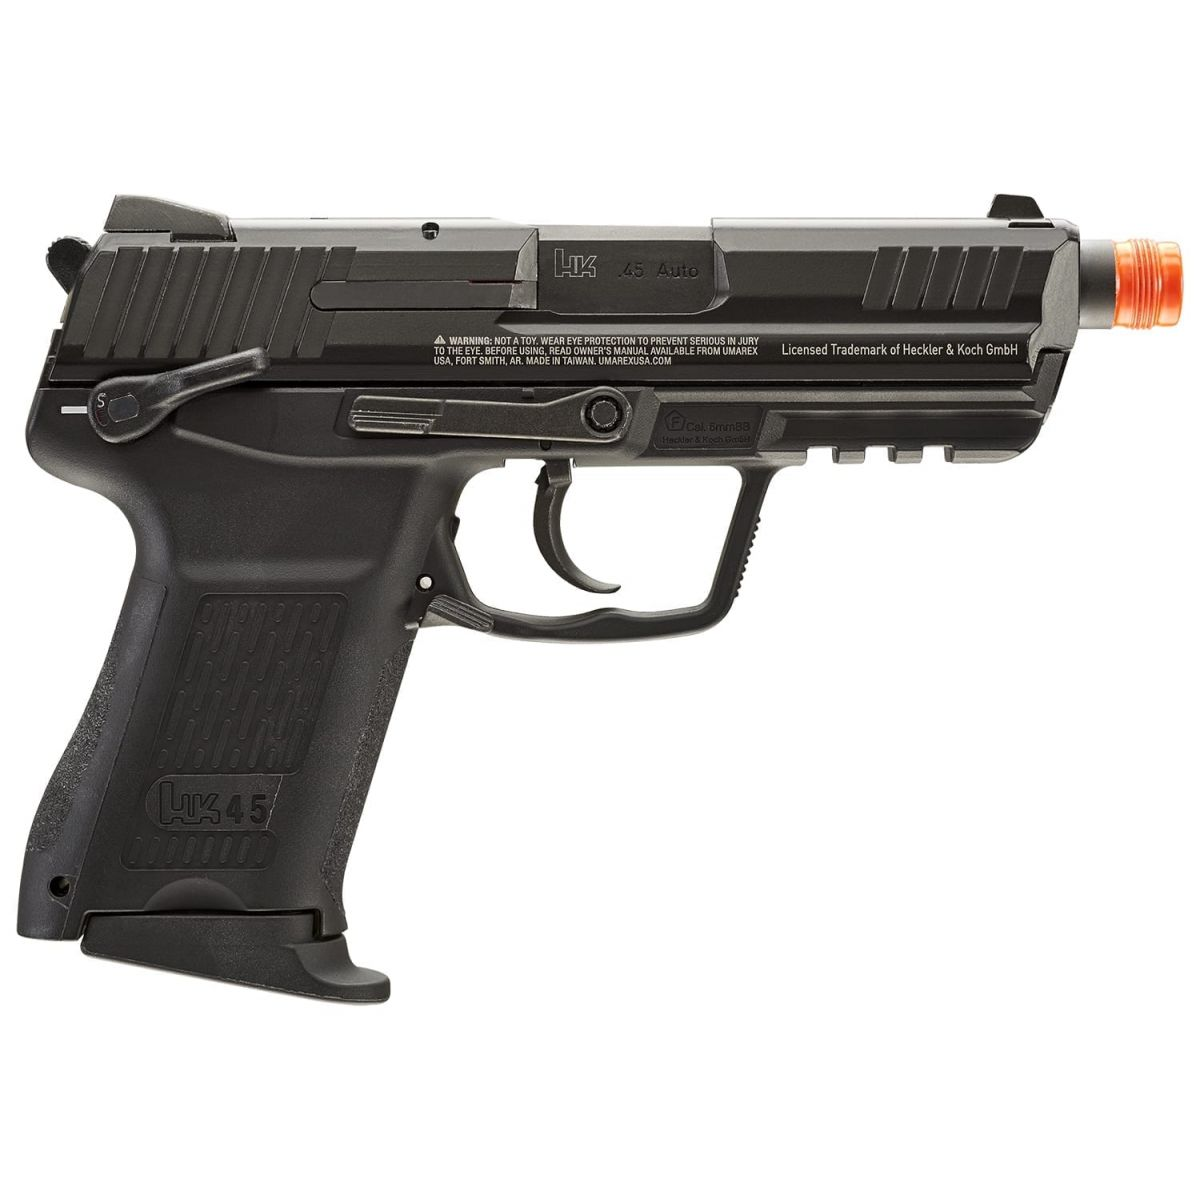 HK 45CT COMPACT GBB AIRSOFT GAS PISTOL